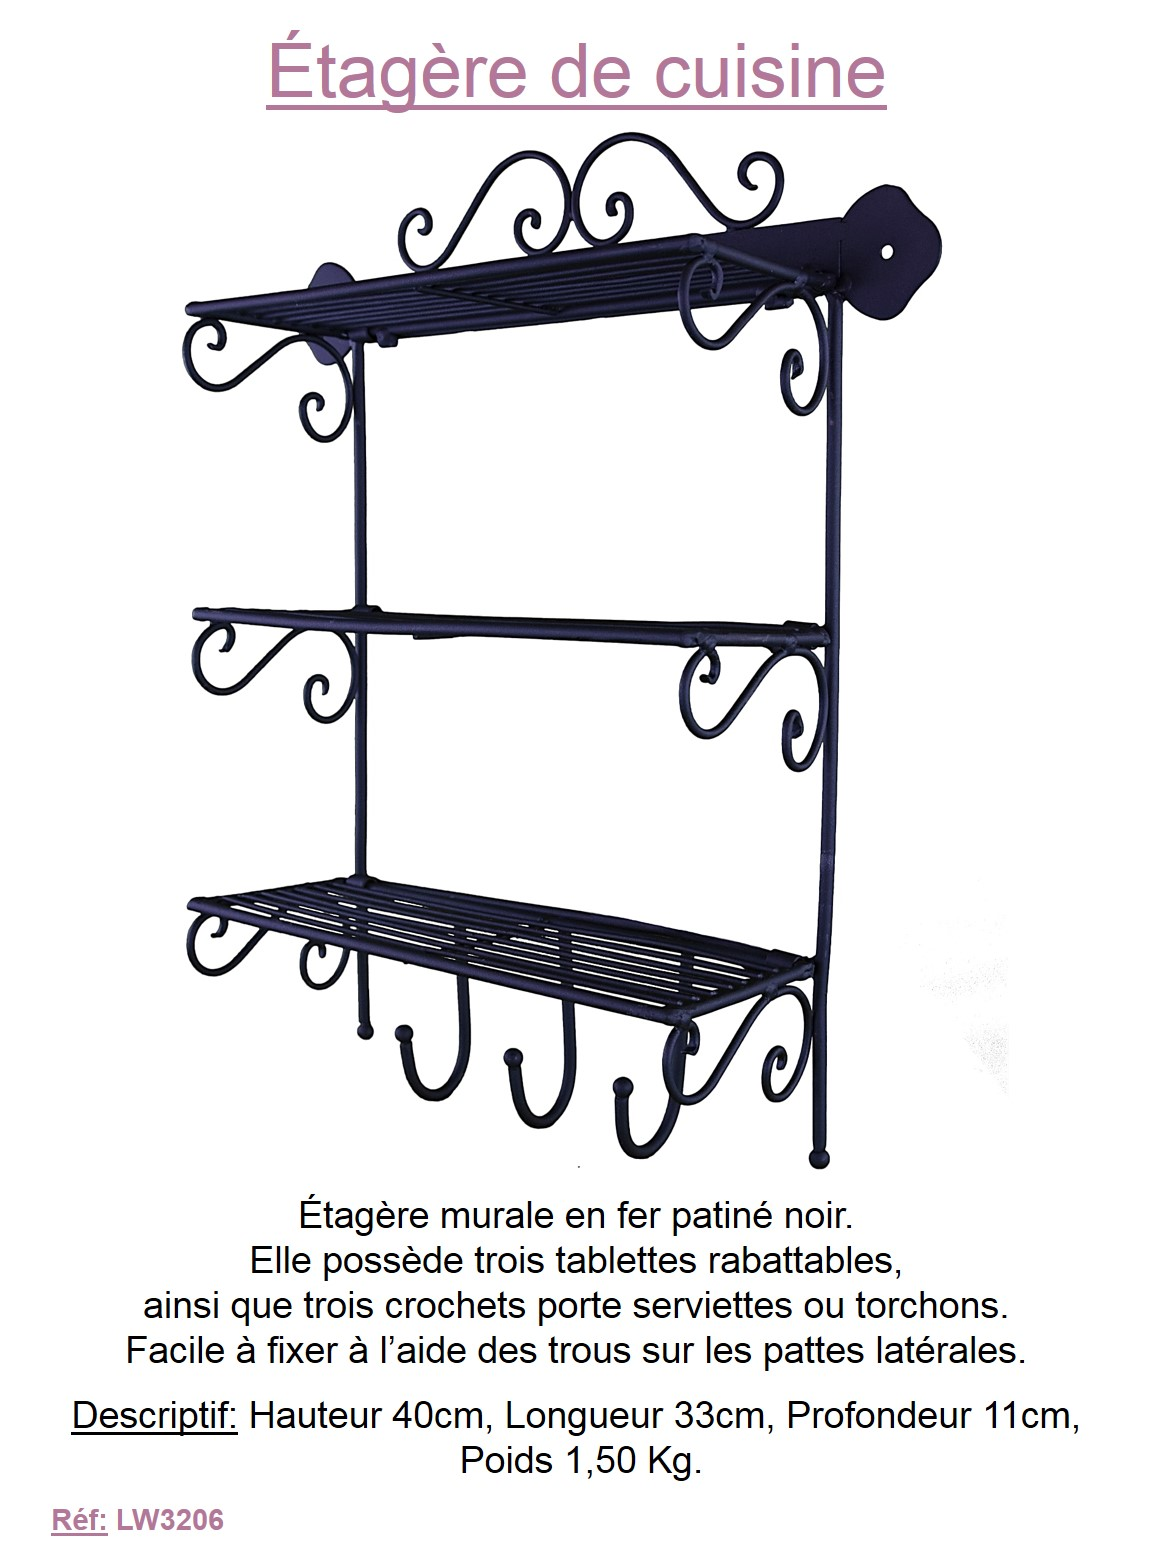 etagere murale cuisine fer forge style ancienne 40x33cm  eBay